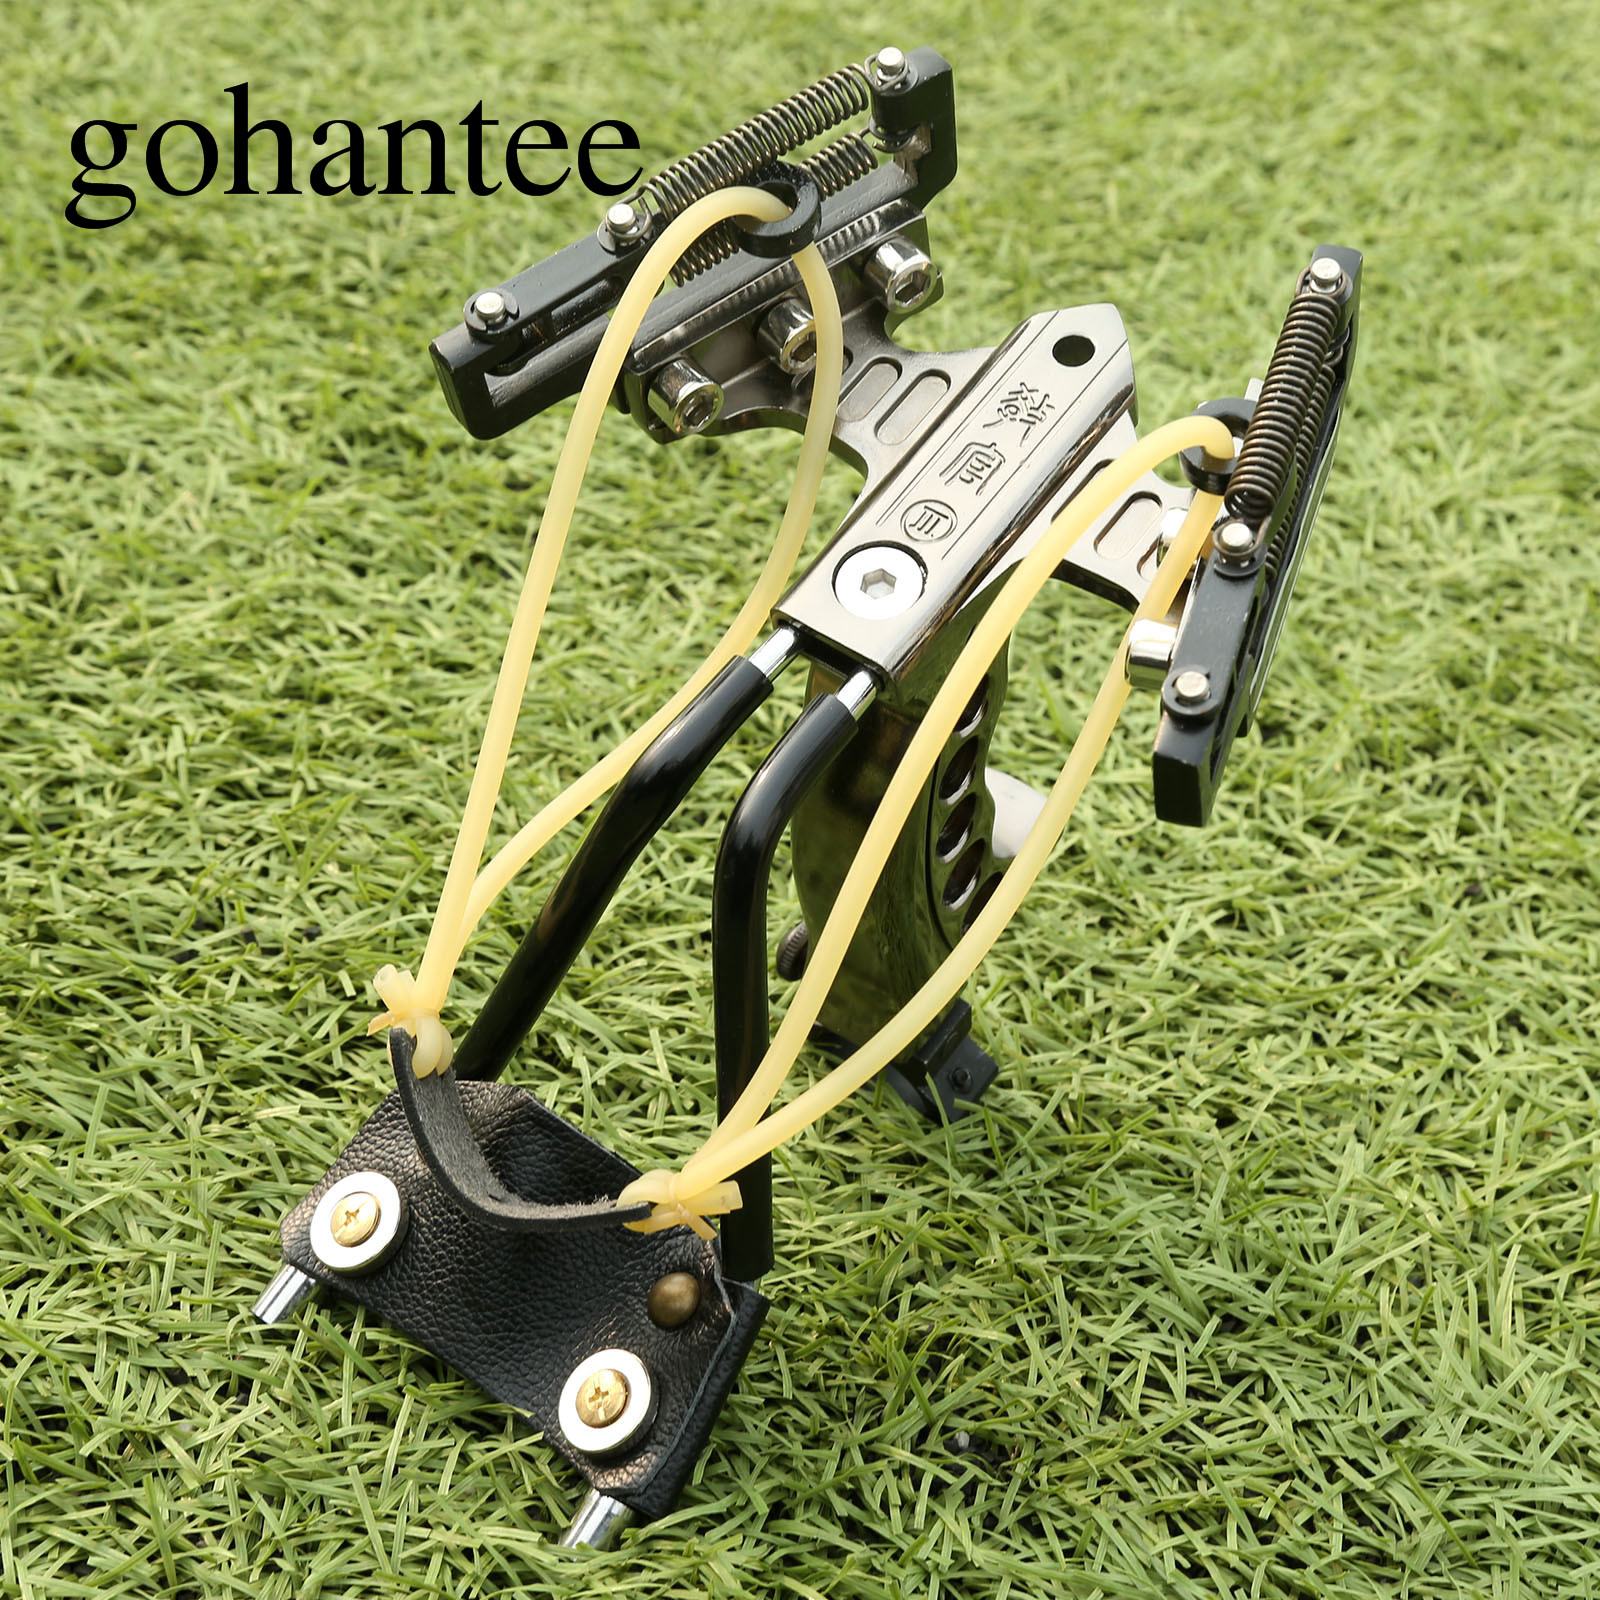 gohantee Tactical Heavy Duty Stainless Steel Slingshot with 4 Spring Wrist Brace Sling Shots Outdoor Hunting Slingshots Catapult умница обучающая игра профессии библиотека